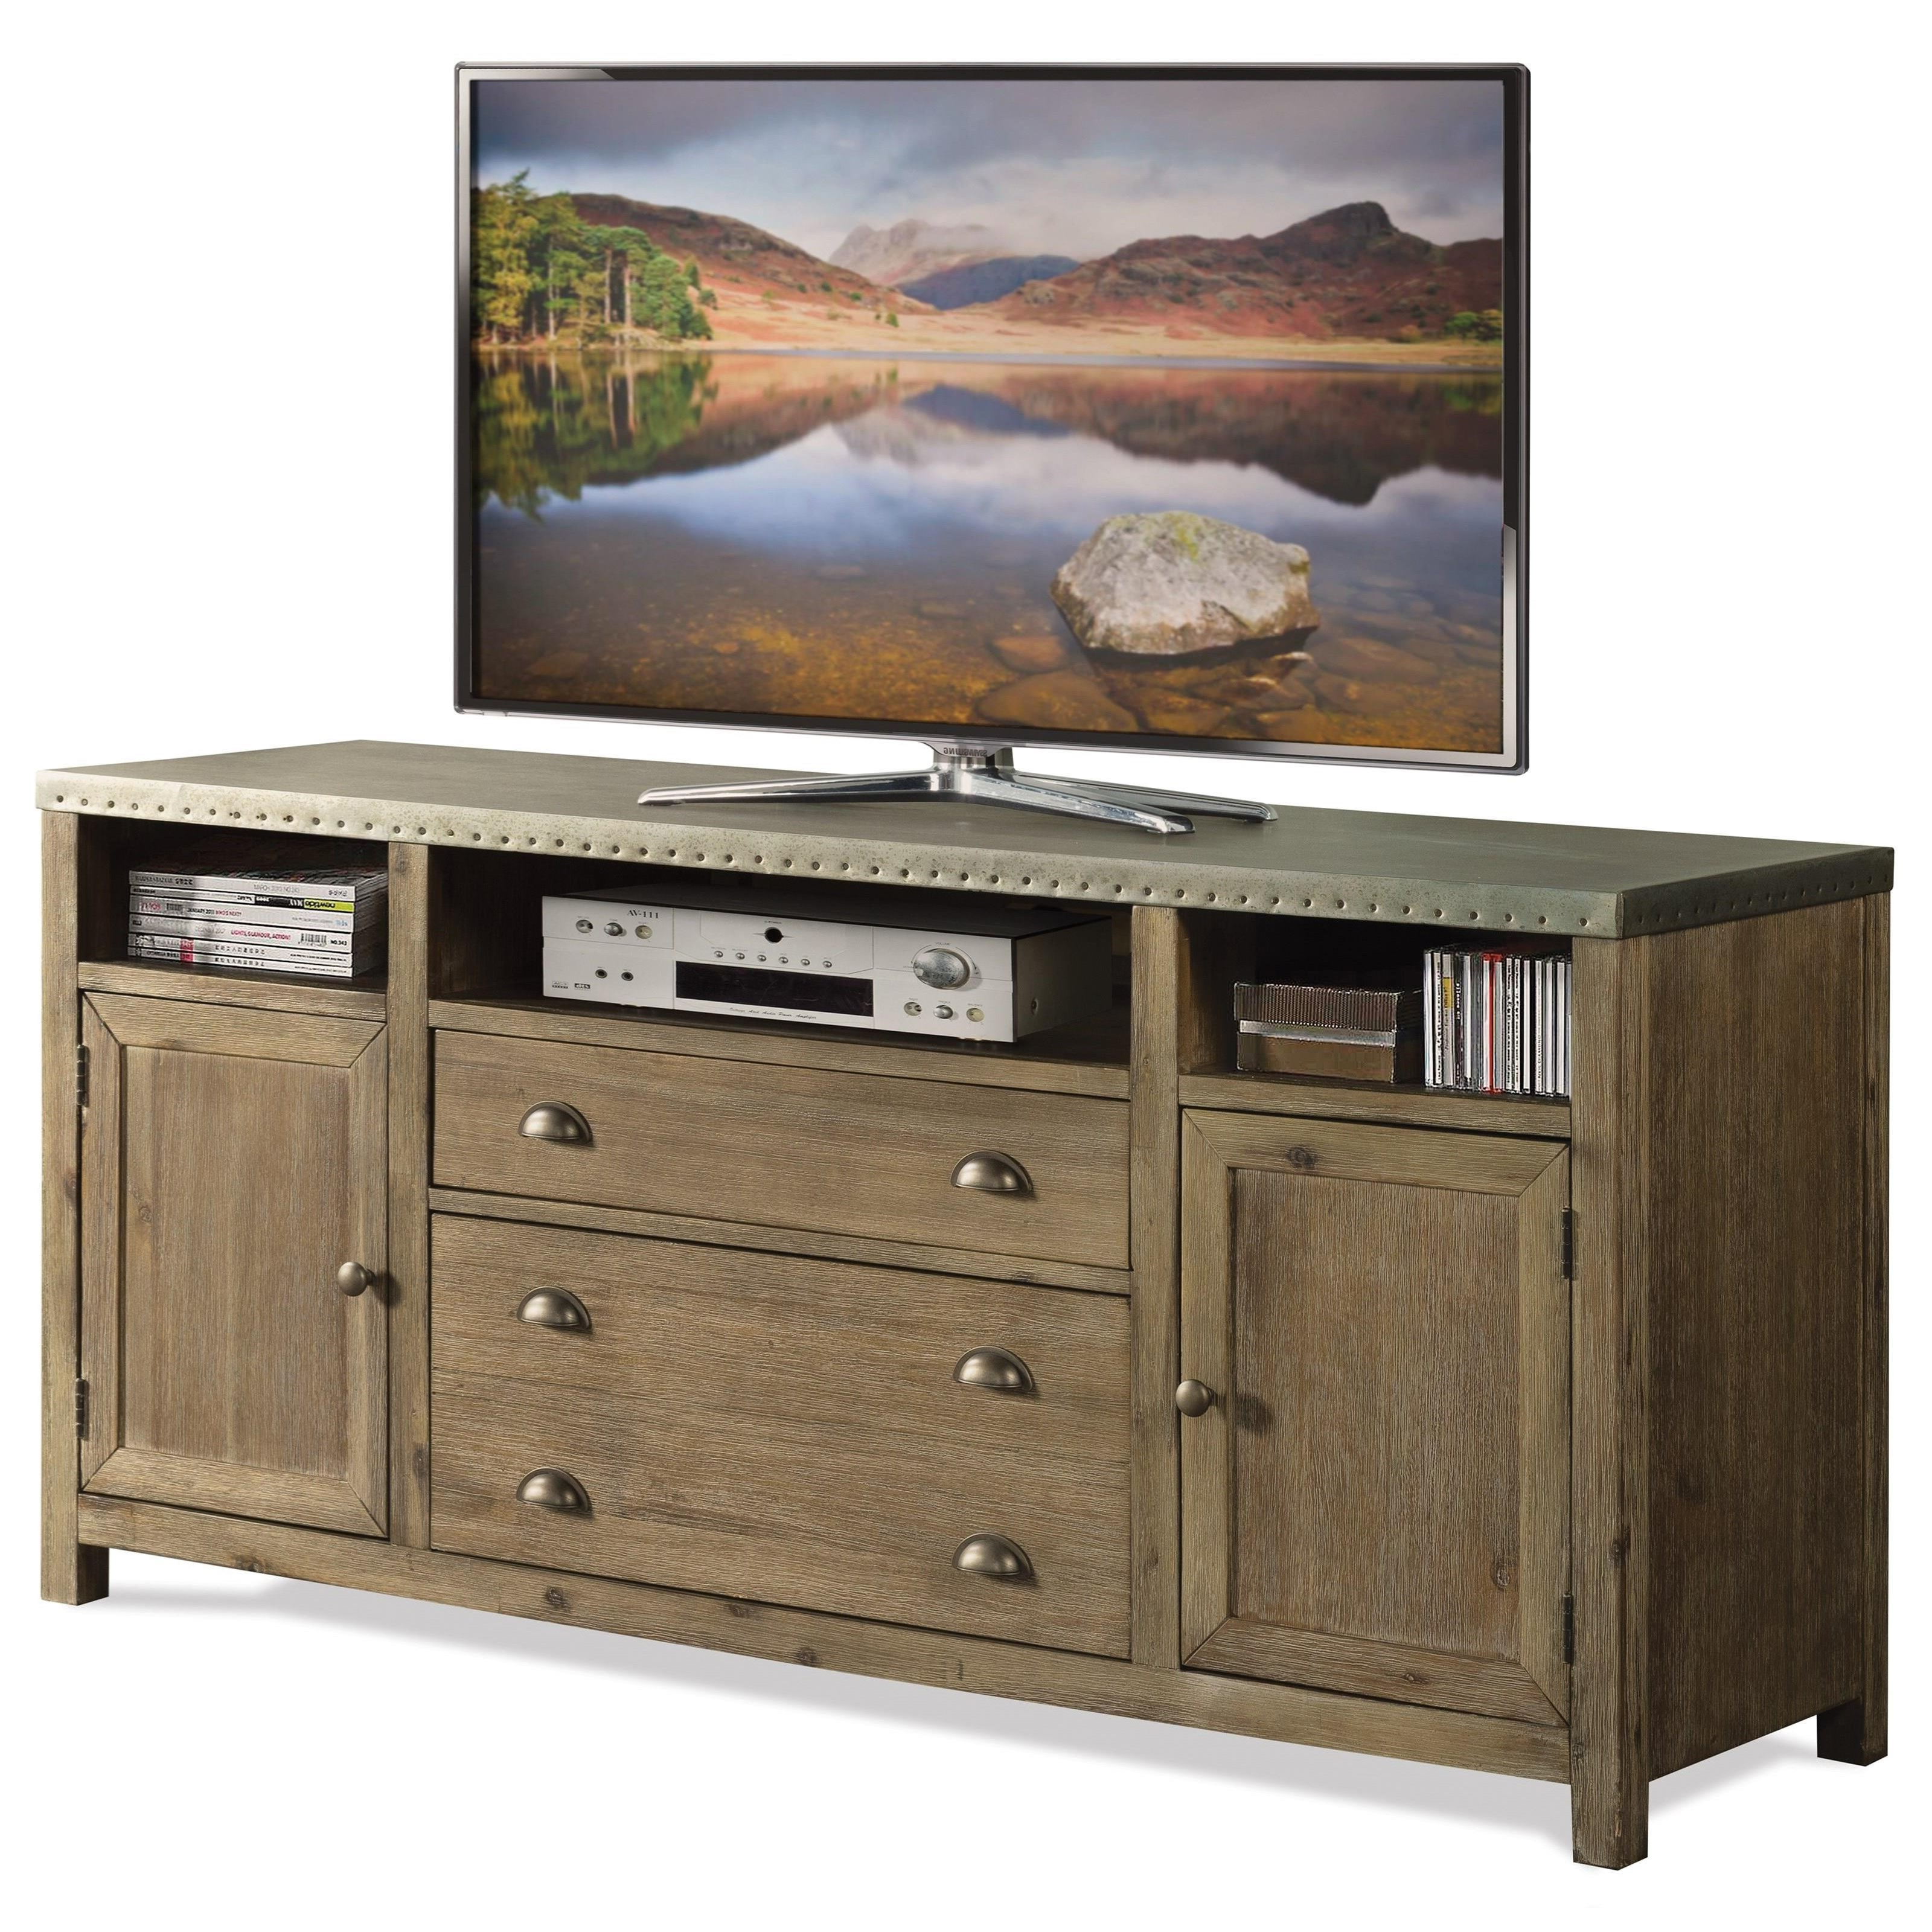 Riverside Furniture Liam 71142 Industrial 64 Inch Tv Console With Pertaining To Rowan 64 Inch Tv Stands (View 12 of 20)